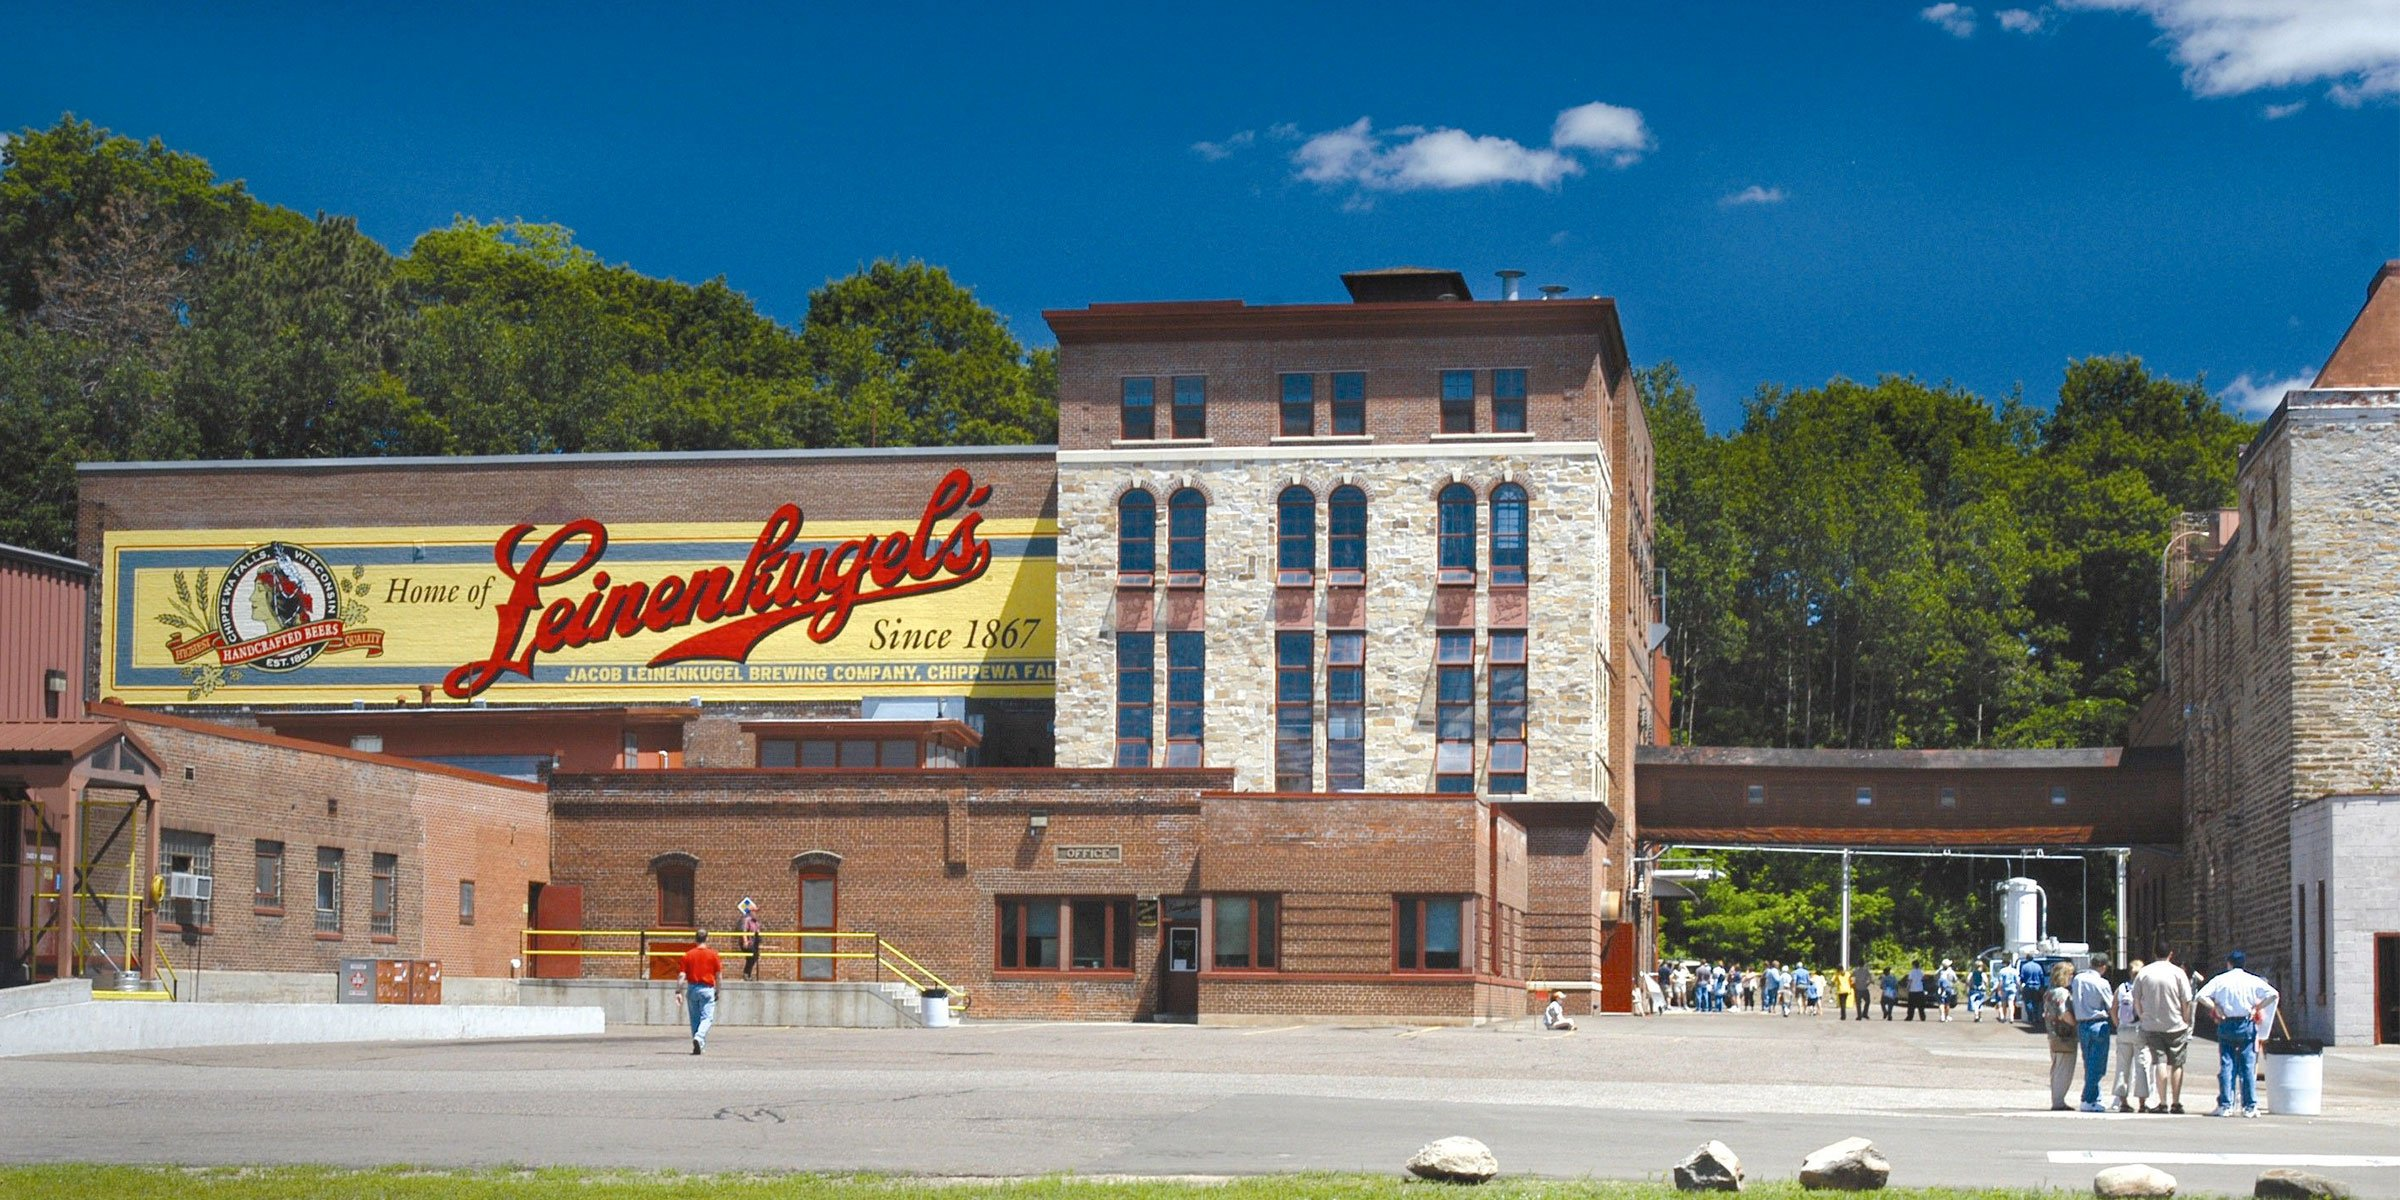 Outside the Jacob Leinenkugel Brewing Company production facility in Chippewa Falls, Wisconsin